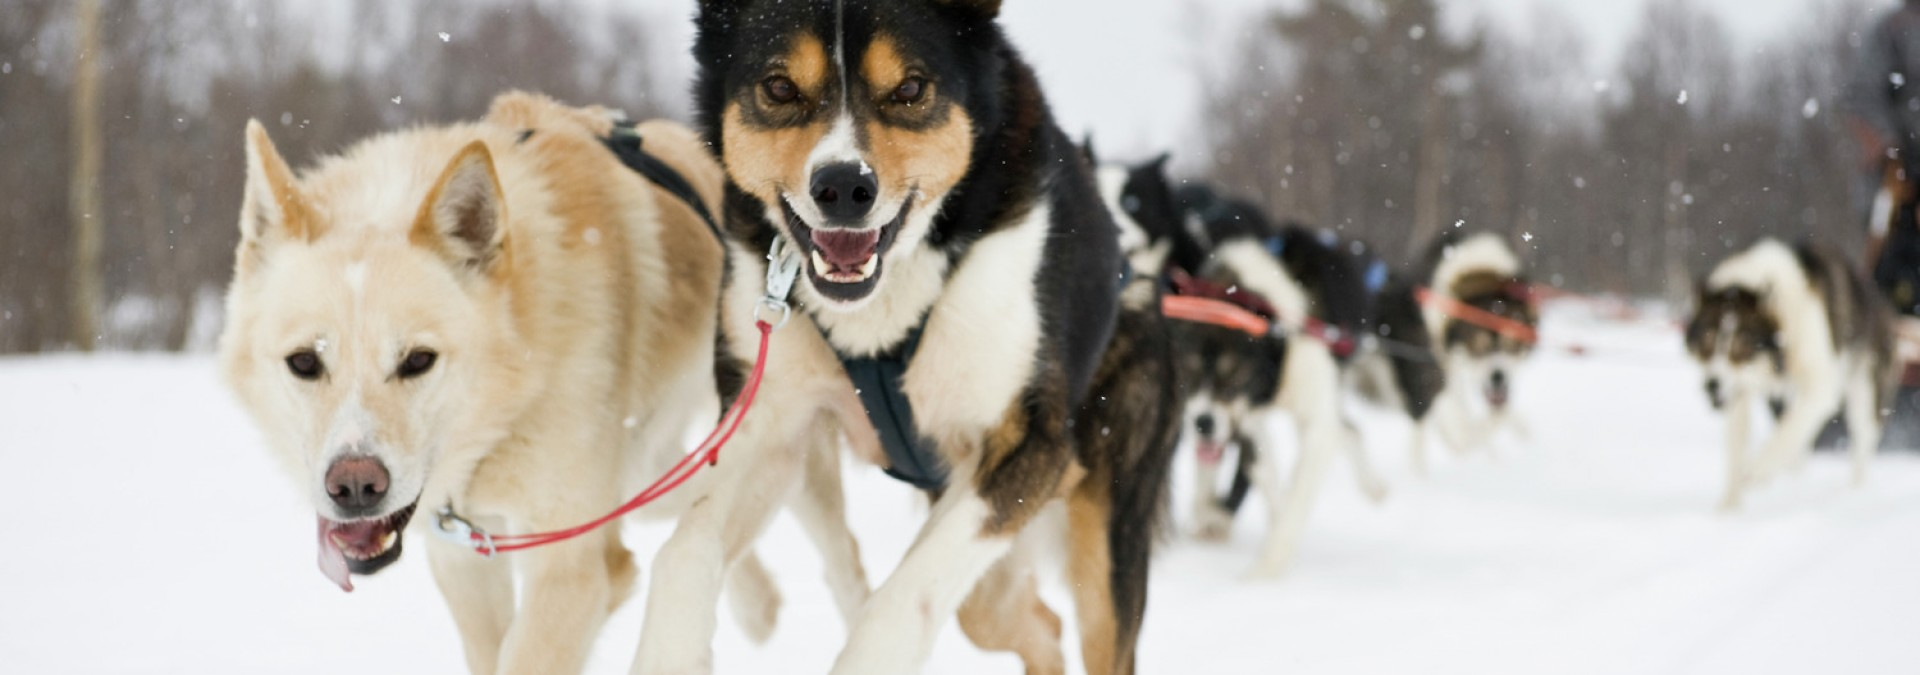 Huskies Terje RakkeNordic Life - Visitnorway.com & Innovation Norway.jpg